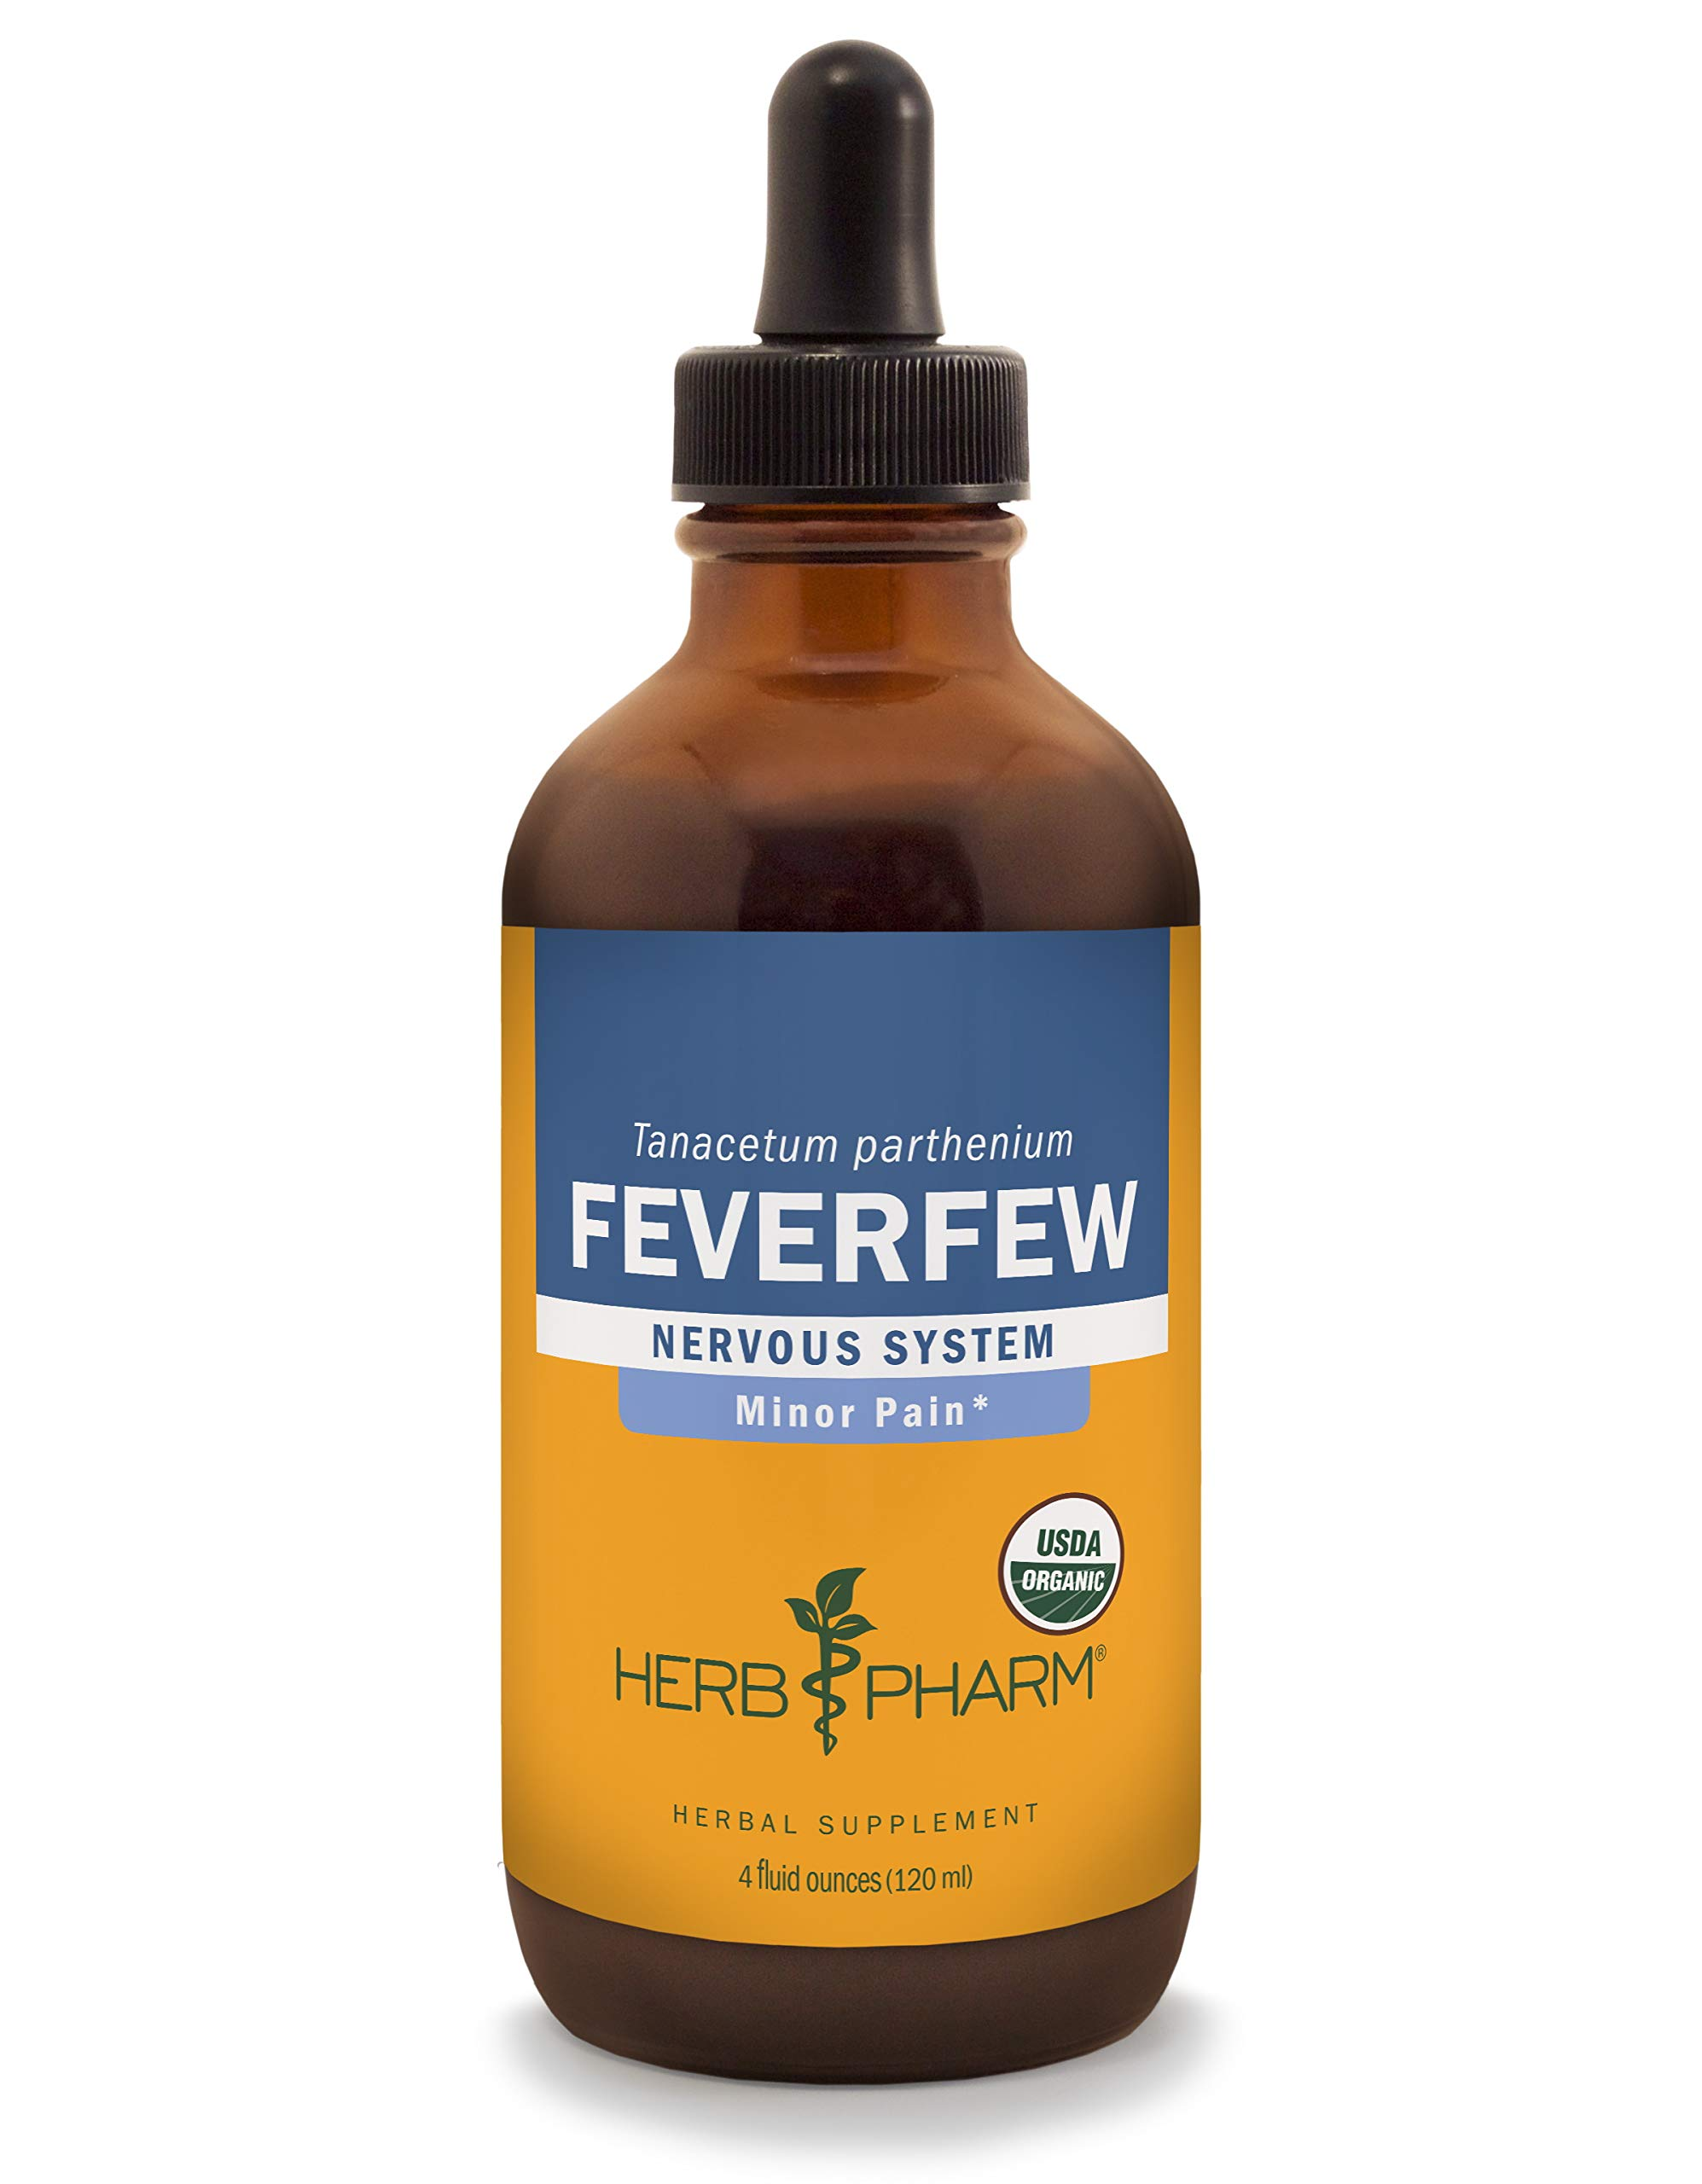 Herb Pharm Certified Organic Feverfew Liquid Extract for Minor Pain Support - 4 Ounce